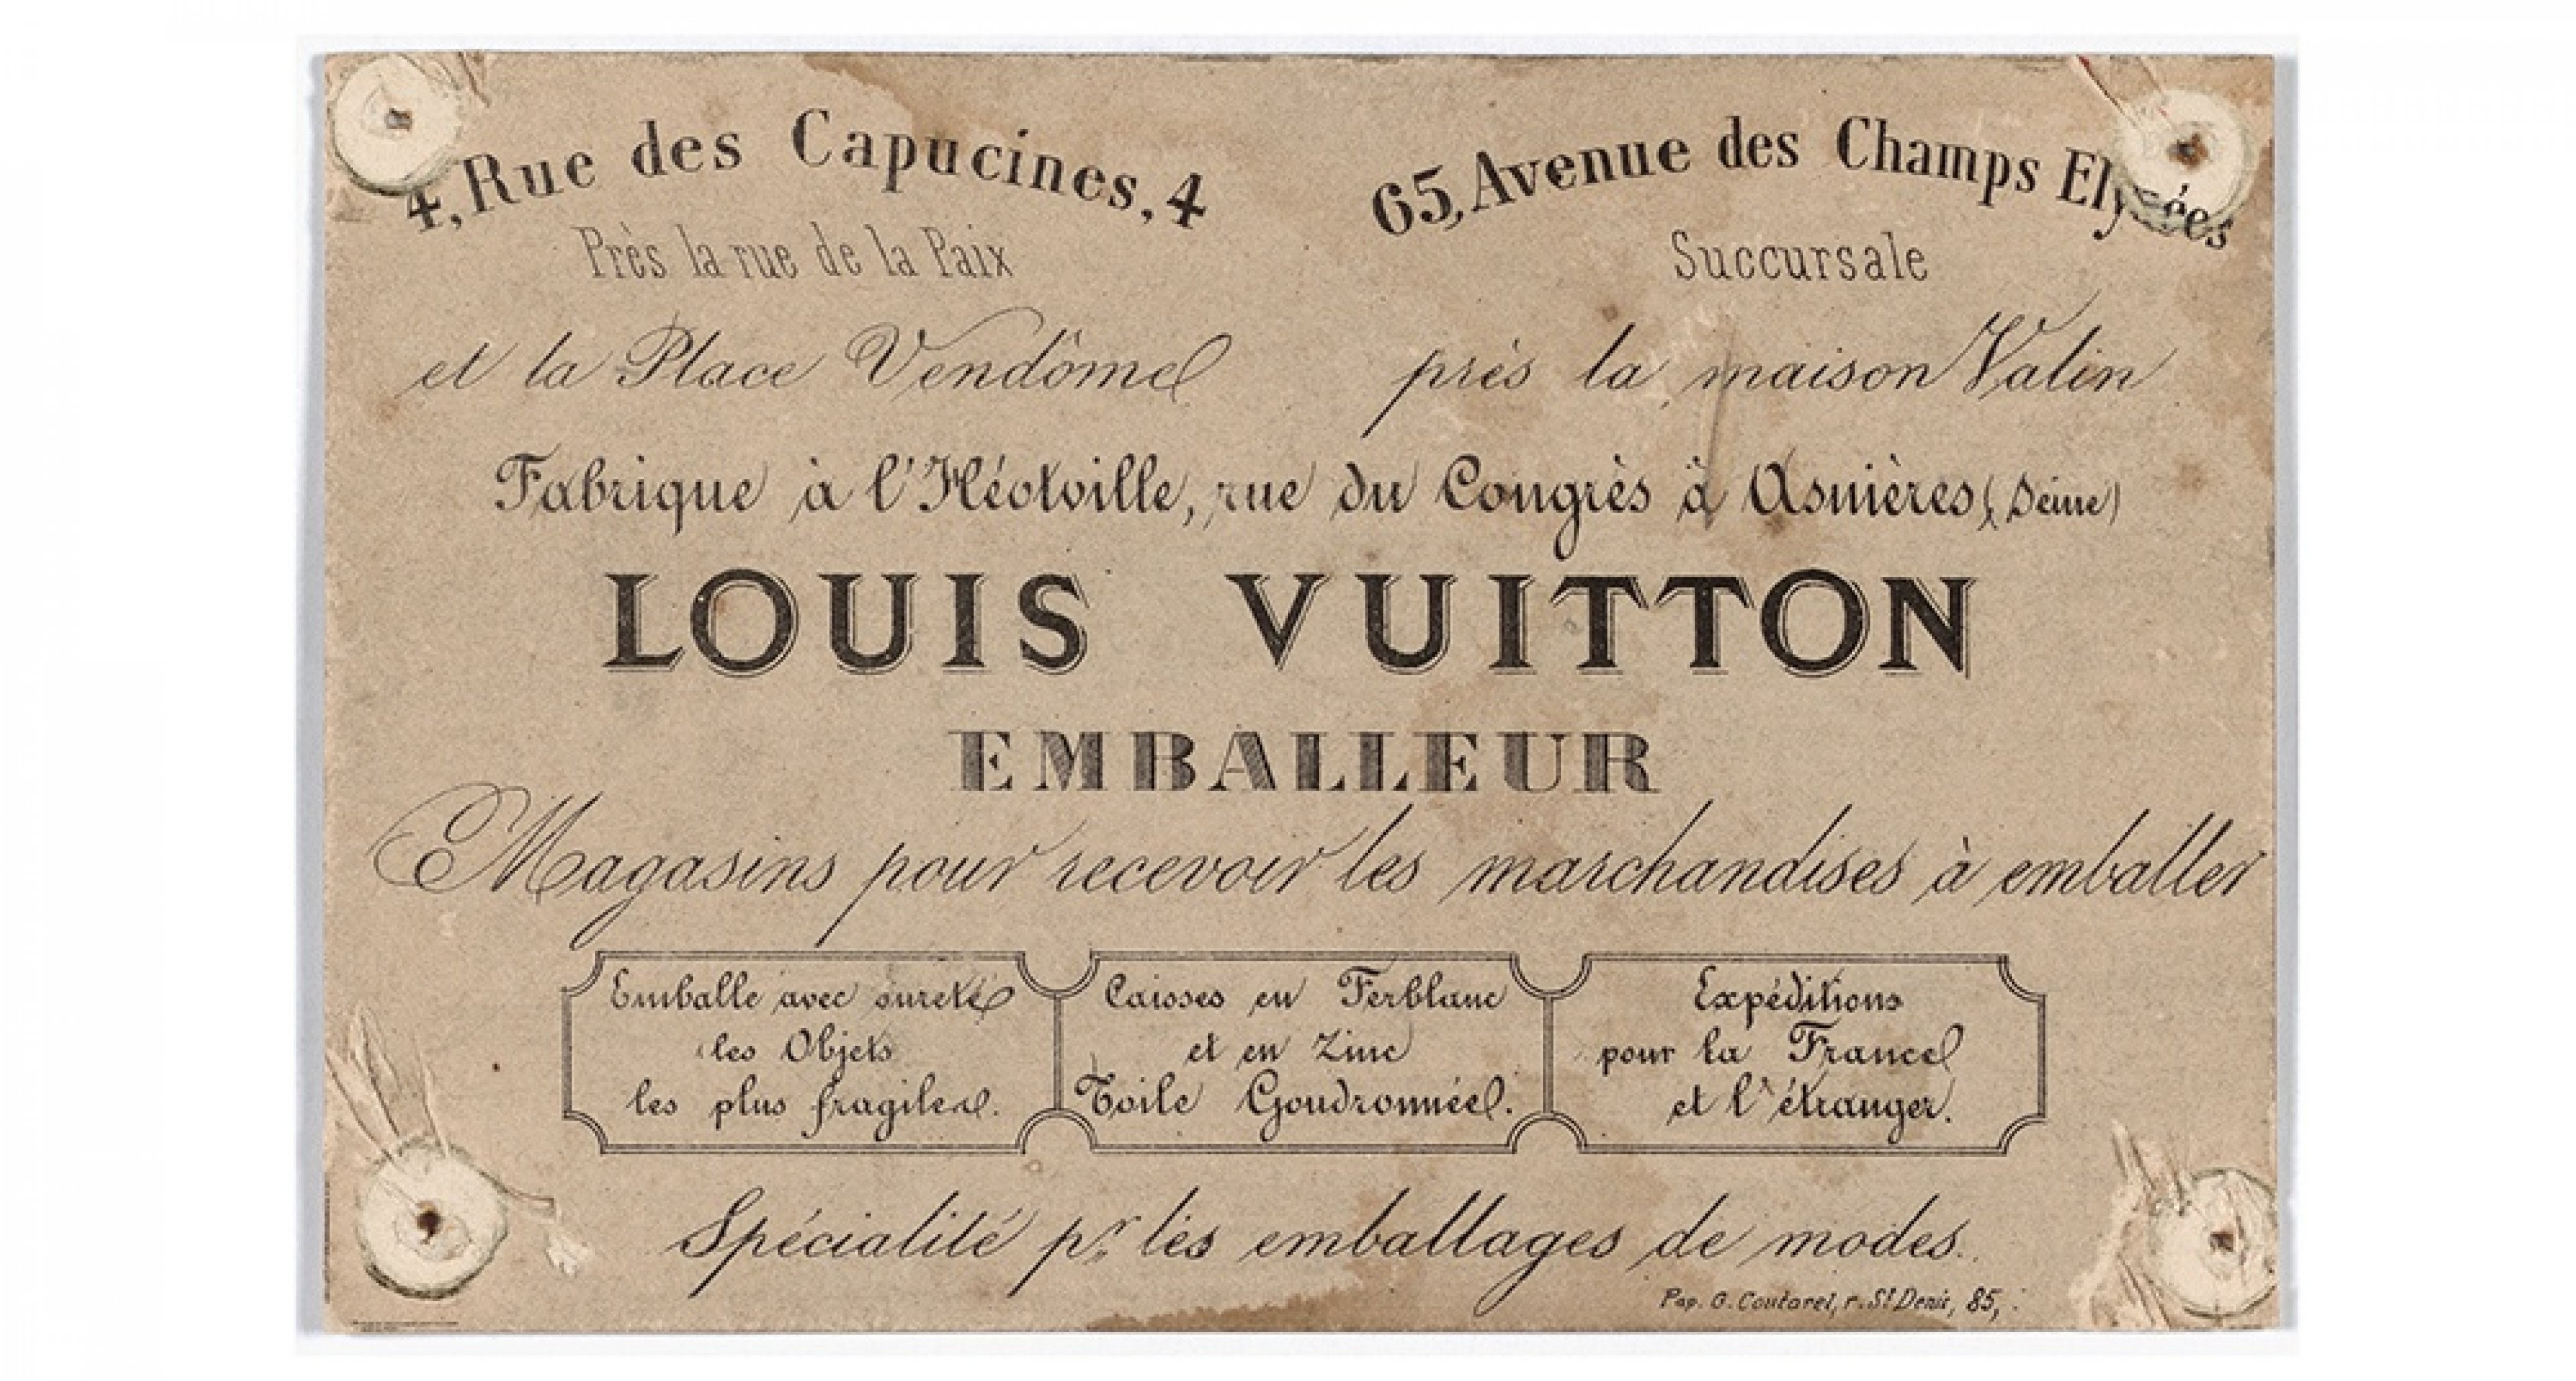 © ARCHIVES LOUIS VUITTON MALLETIER